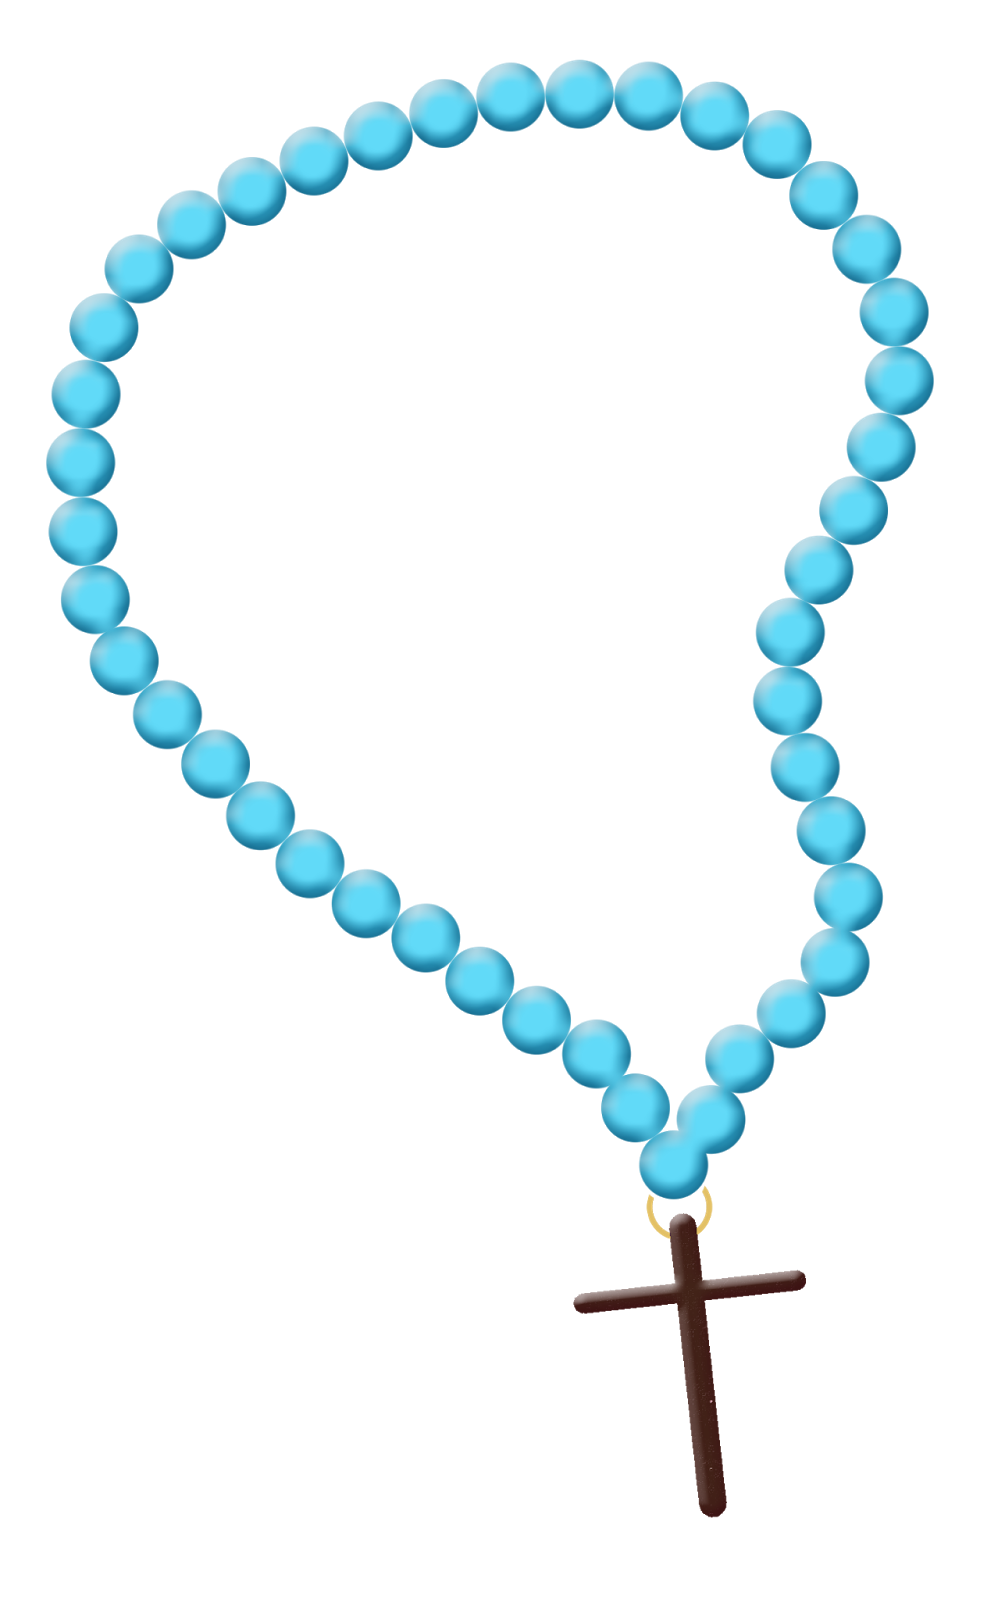 Rosary clipart png. Beads at getdrawings com